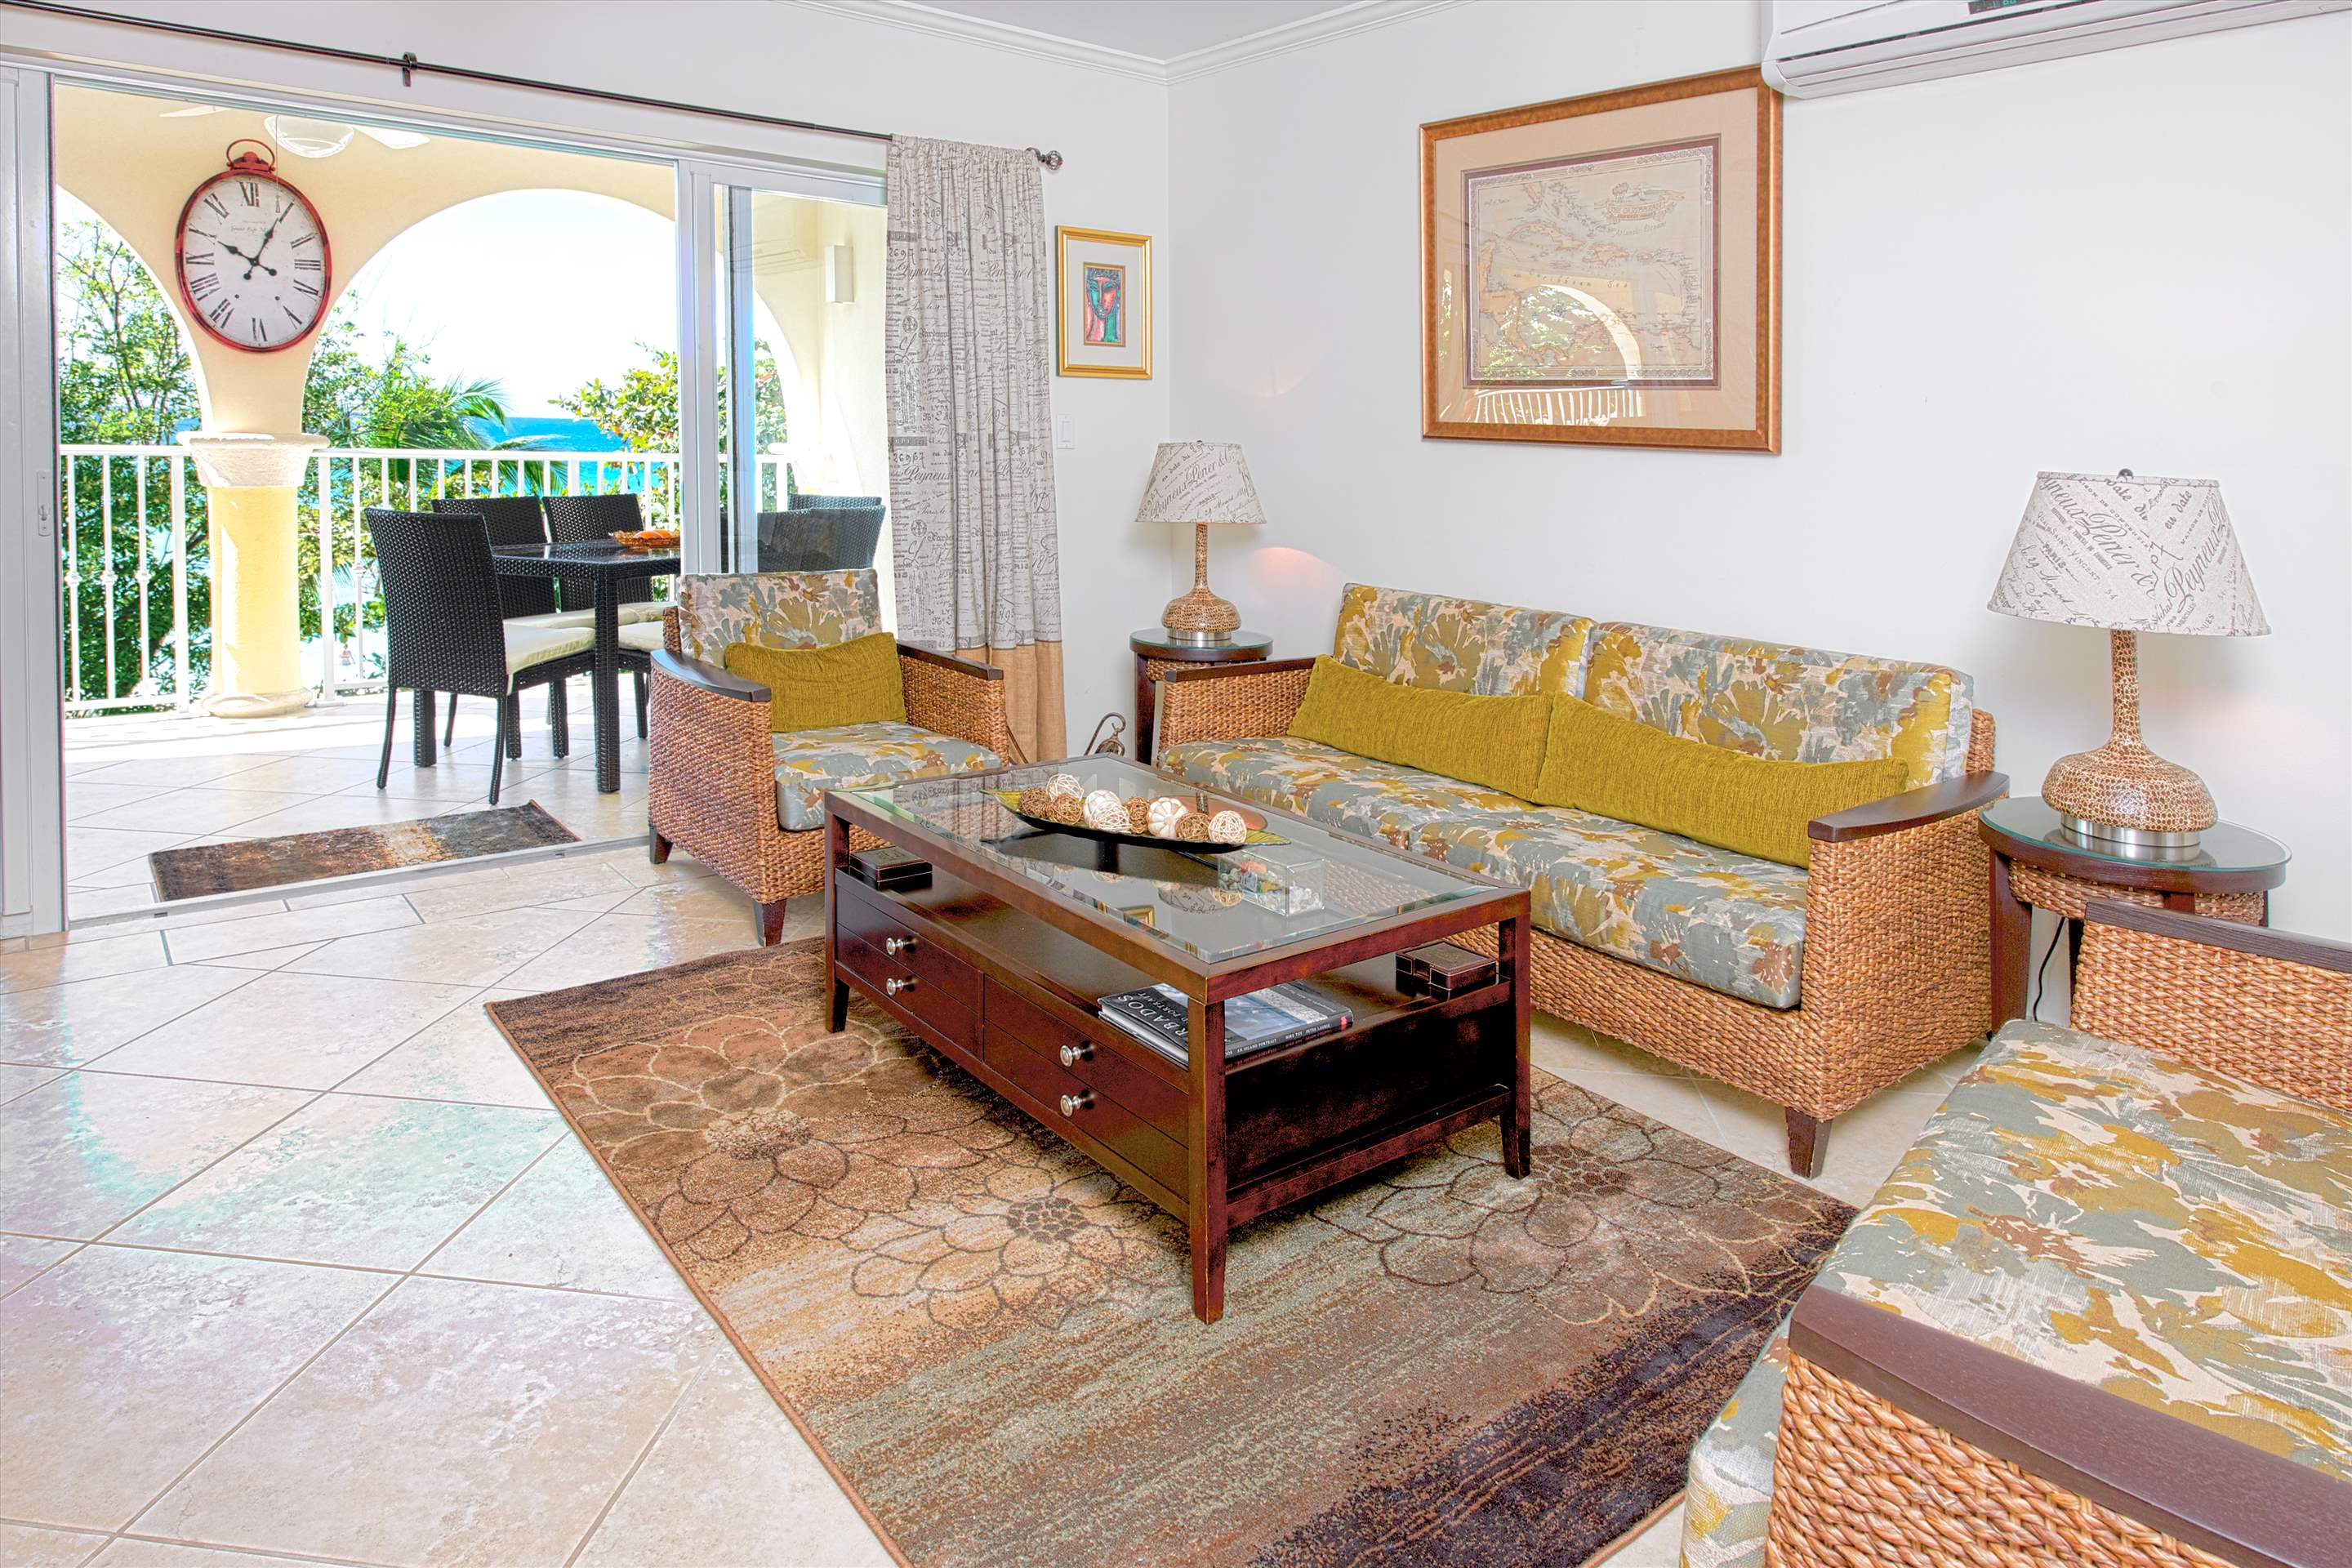 Sapphire Beach 203, 2 bedroom, 3 bedroom apartment in St. Lawrence Gap & South Coast, Barbados Photo #4